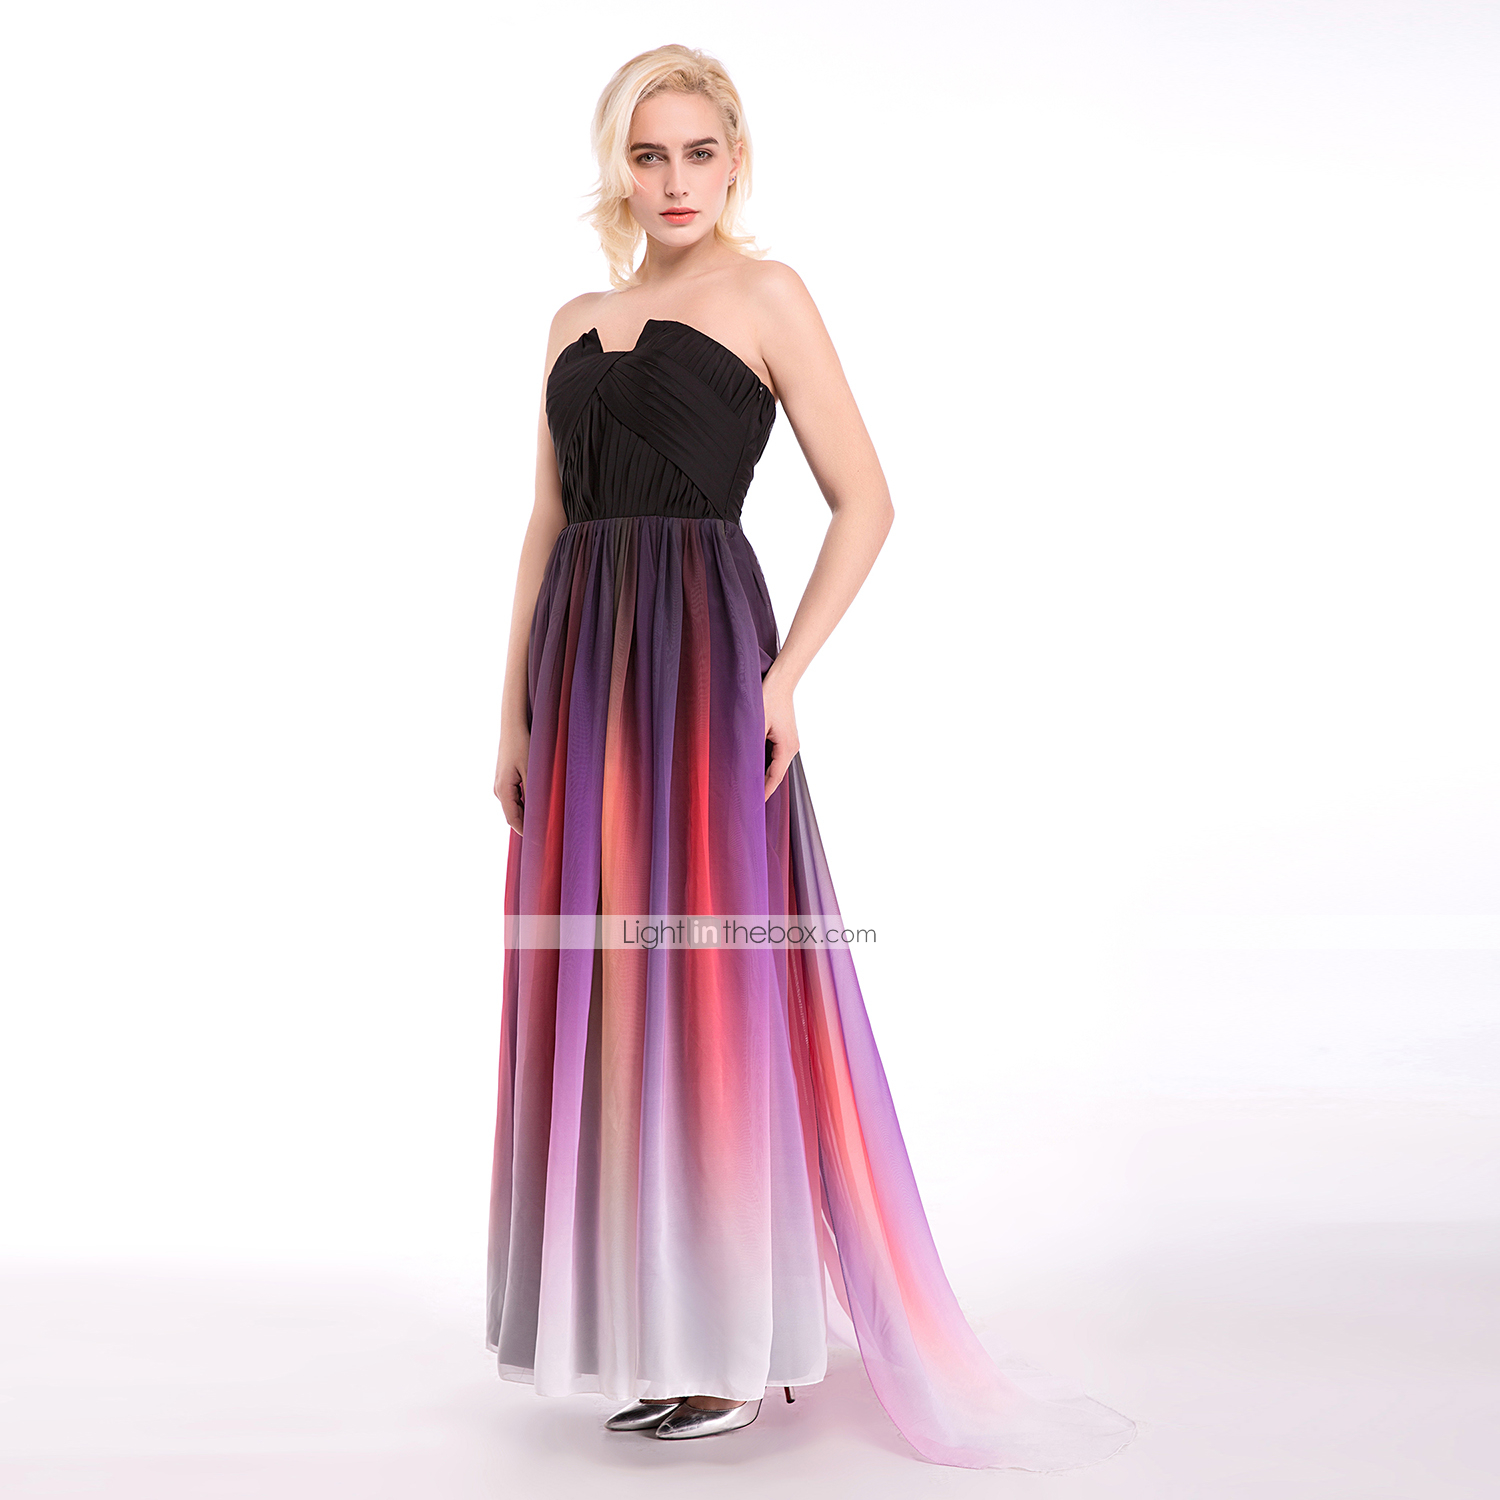 03b1a39853b Cocktail Party   Formal Evening Dress - Multi-color Ball Gown Notched Floor- length Chiffon  04763098